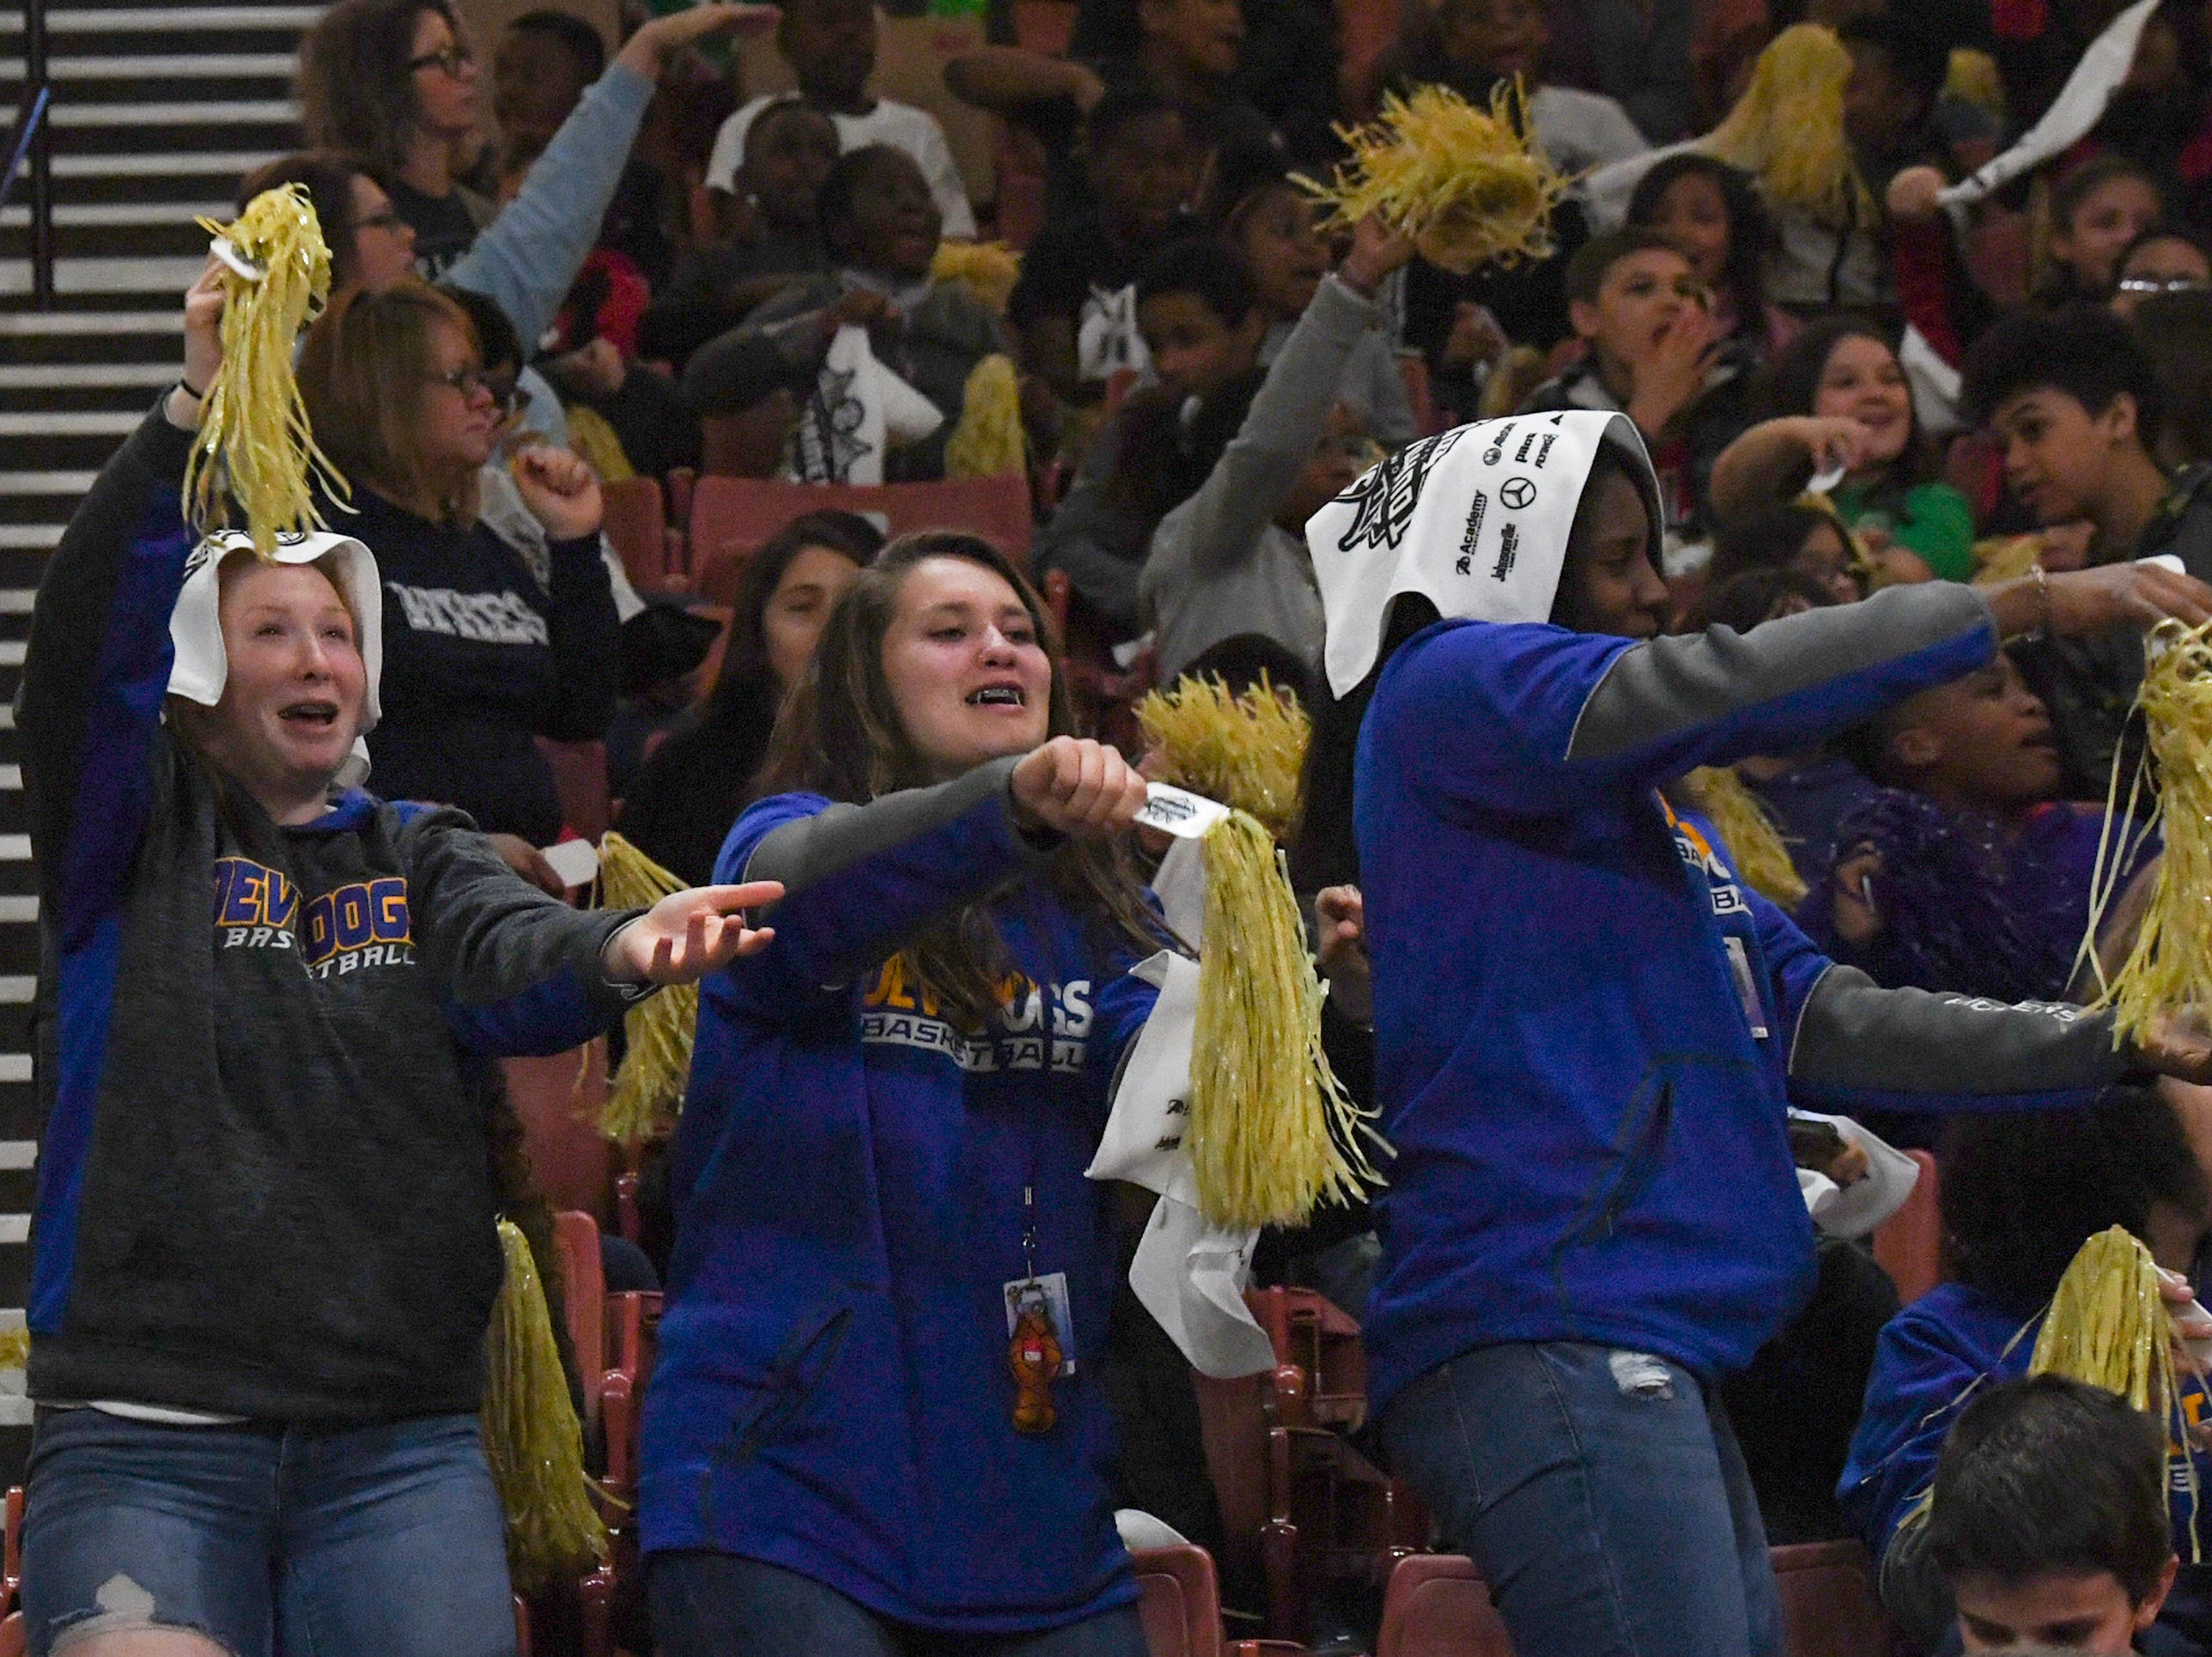 """Summer Baties, left, Emma Baker, and Kloey Pickens, basketball players from Travelers Rest High School, make arm motions of a shark bite as popular song """"Baby Shark""""  is played during a break at the first SEC Women's basketball tournament game with Ole Miss and Florida in Greenville Wednesday. The tournament lasts through Sunday."""